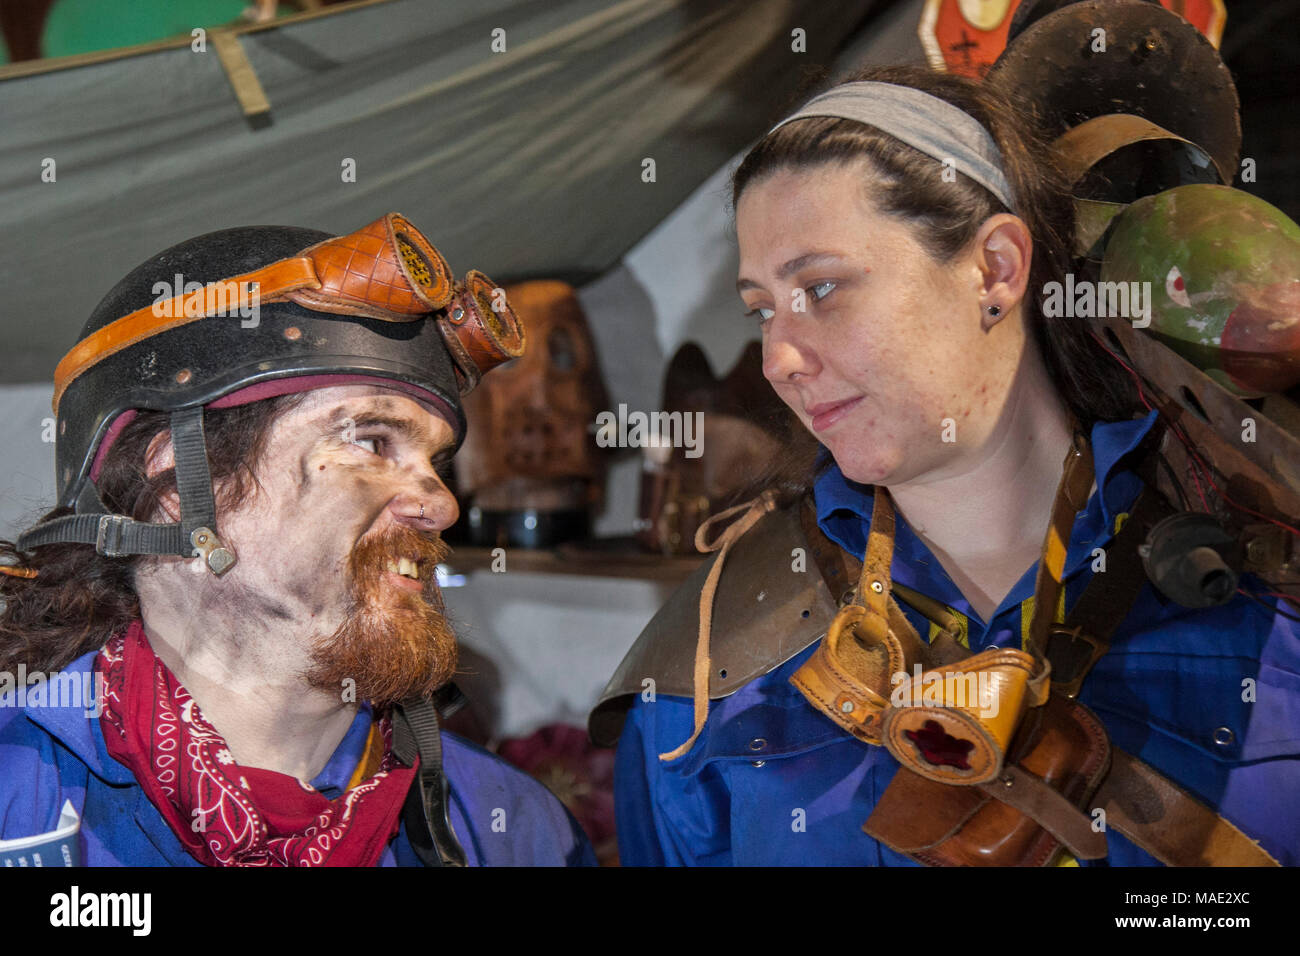 Manchester, UK, 31st March 2018. Post-apocalyptic TimeQuake Steampunk Festival,  Weekend at the Asylum, the Planet's largest steampunk festival where a City becomes Wasteland Costumes Capital for four days. The Victorian Steampunk Society, teamed up with Manchester's Bowlers Exhibition Centre and the organisers of For the Love of Sci Fi to create create a realistic genre, masquerade, fantasy carnival cosplay Expo. Credit: MediaWorldImages/AlamyLiveNews - Stock Image